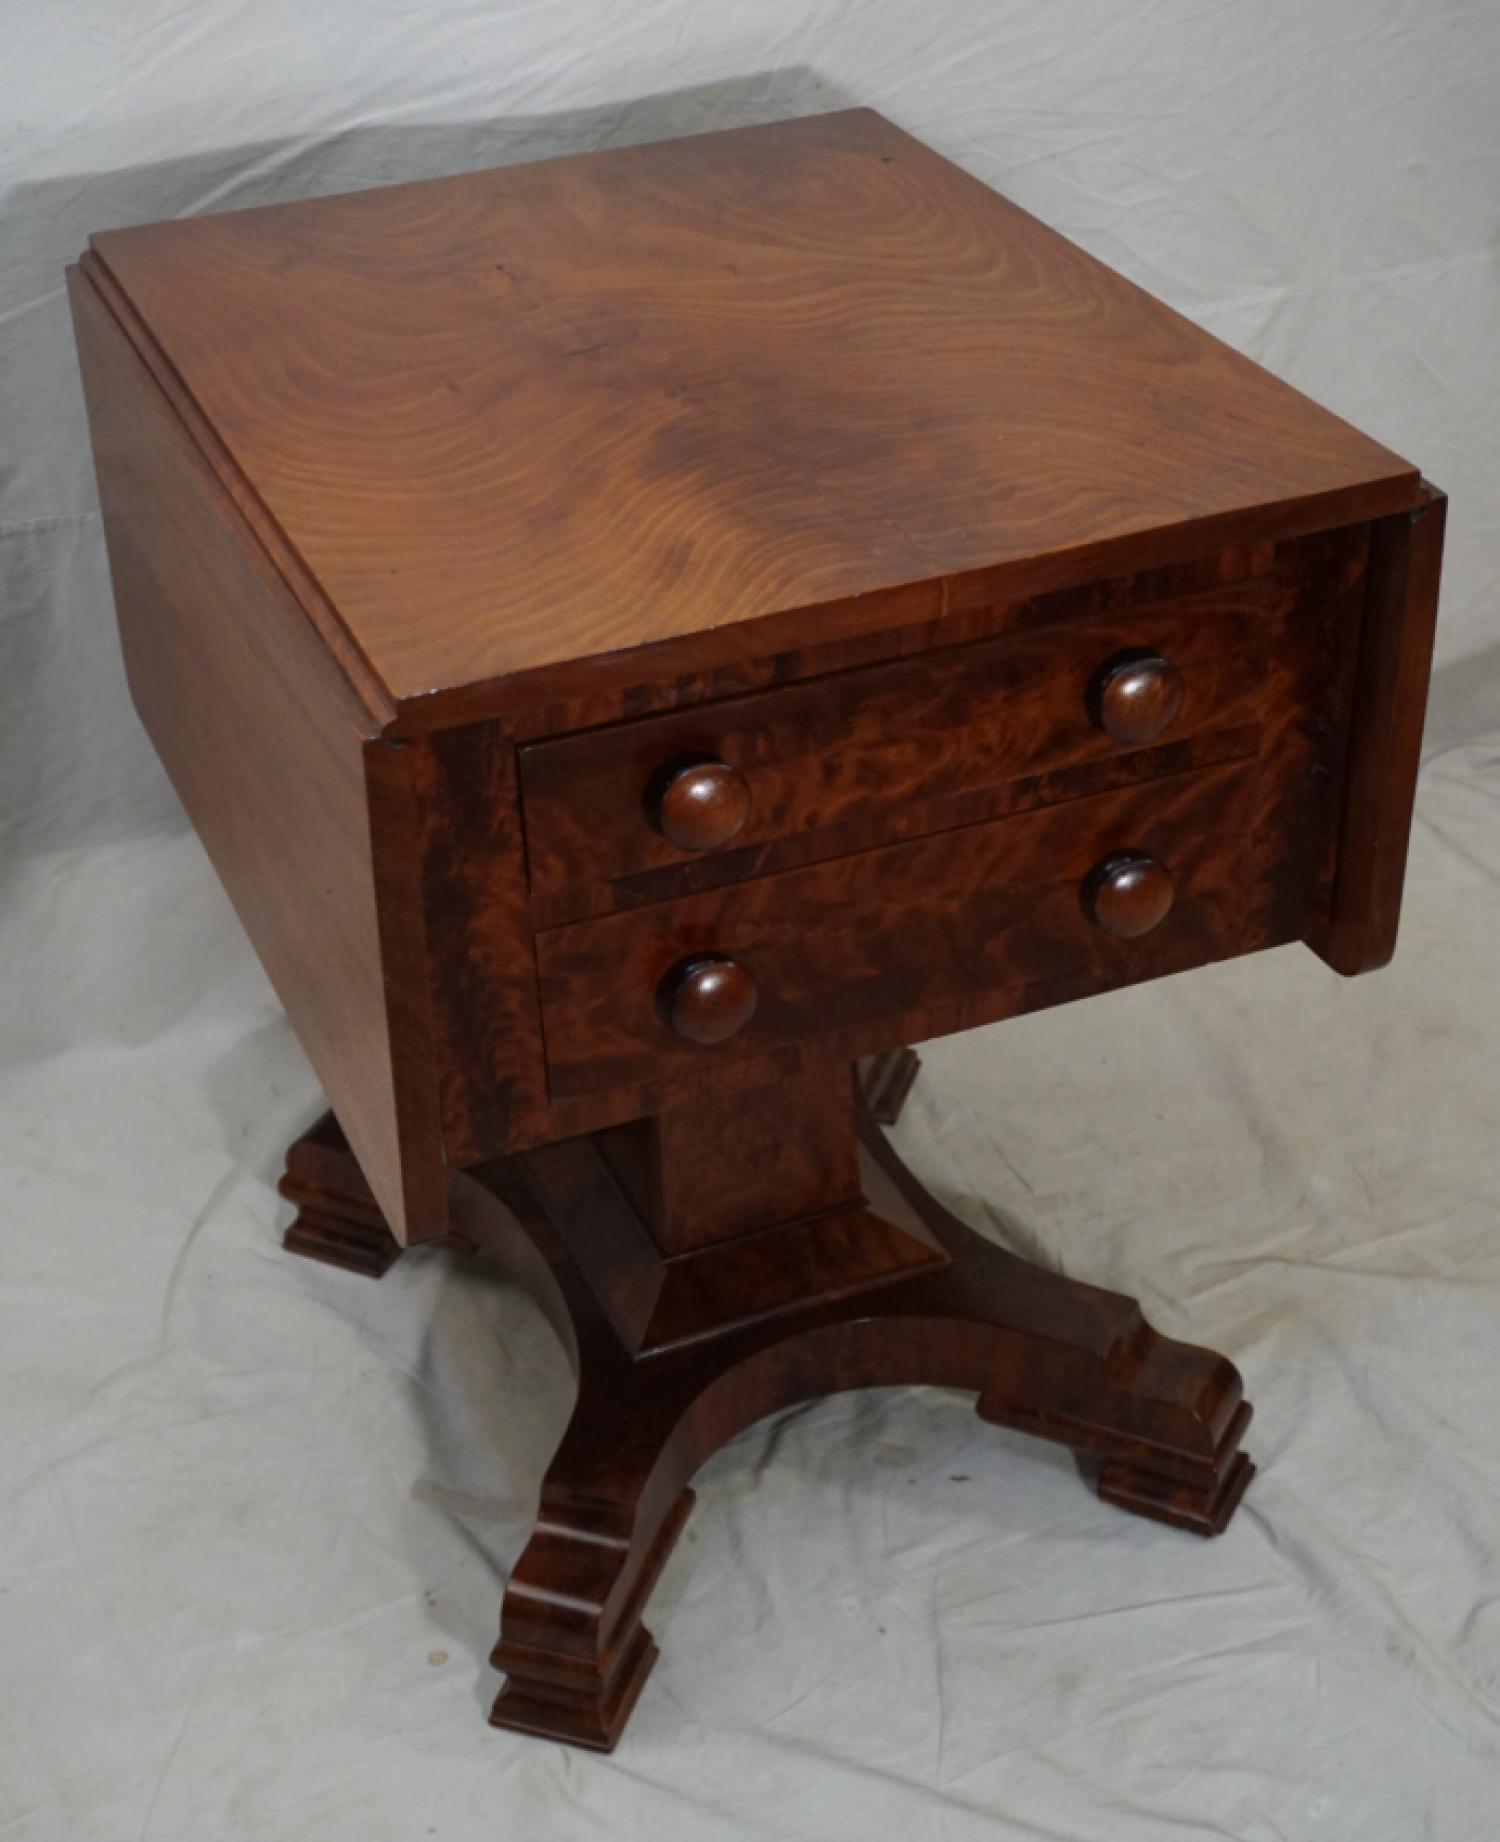 Federal Empire mahogany work stand c1830